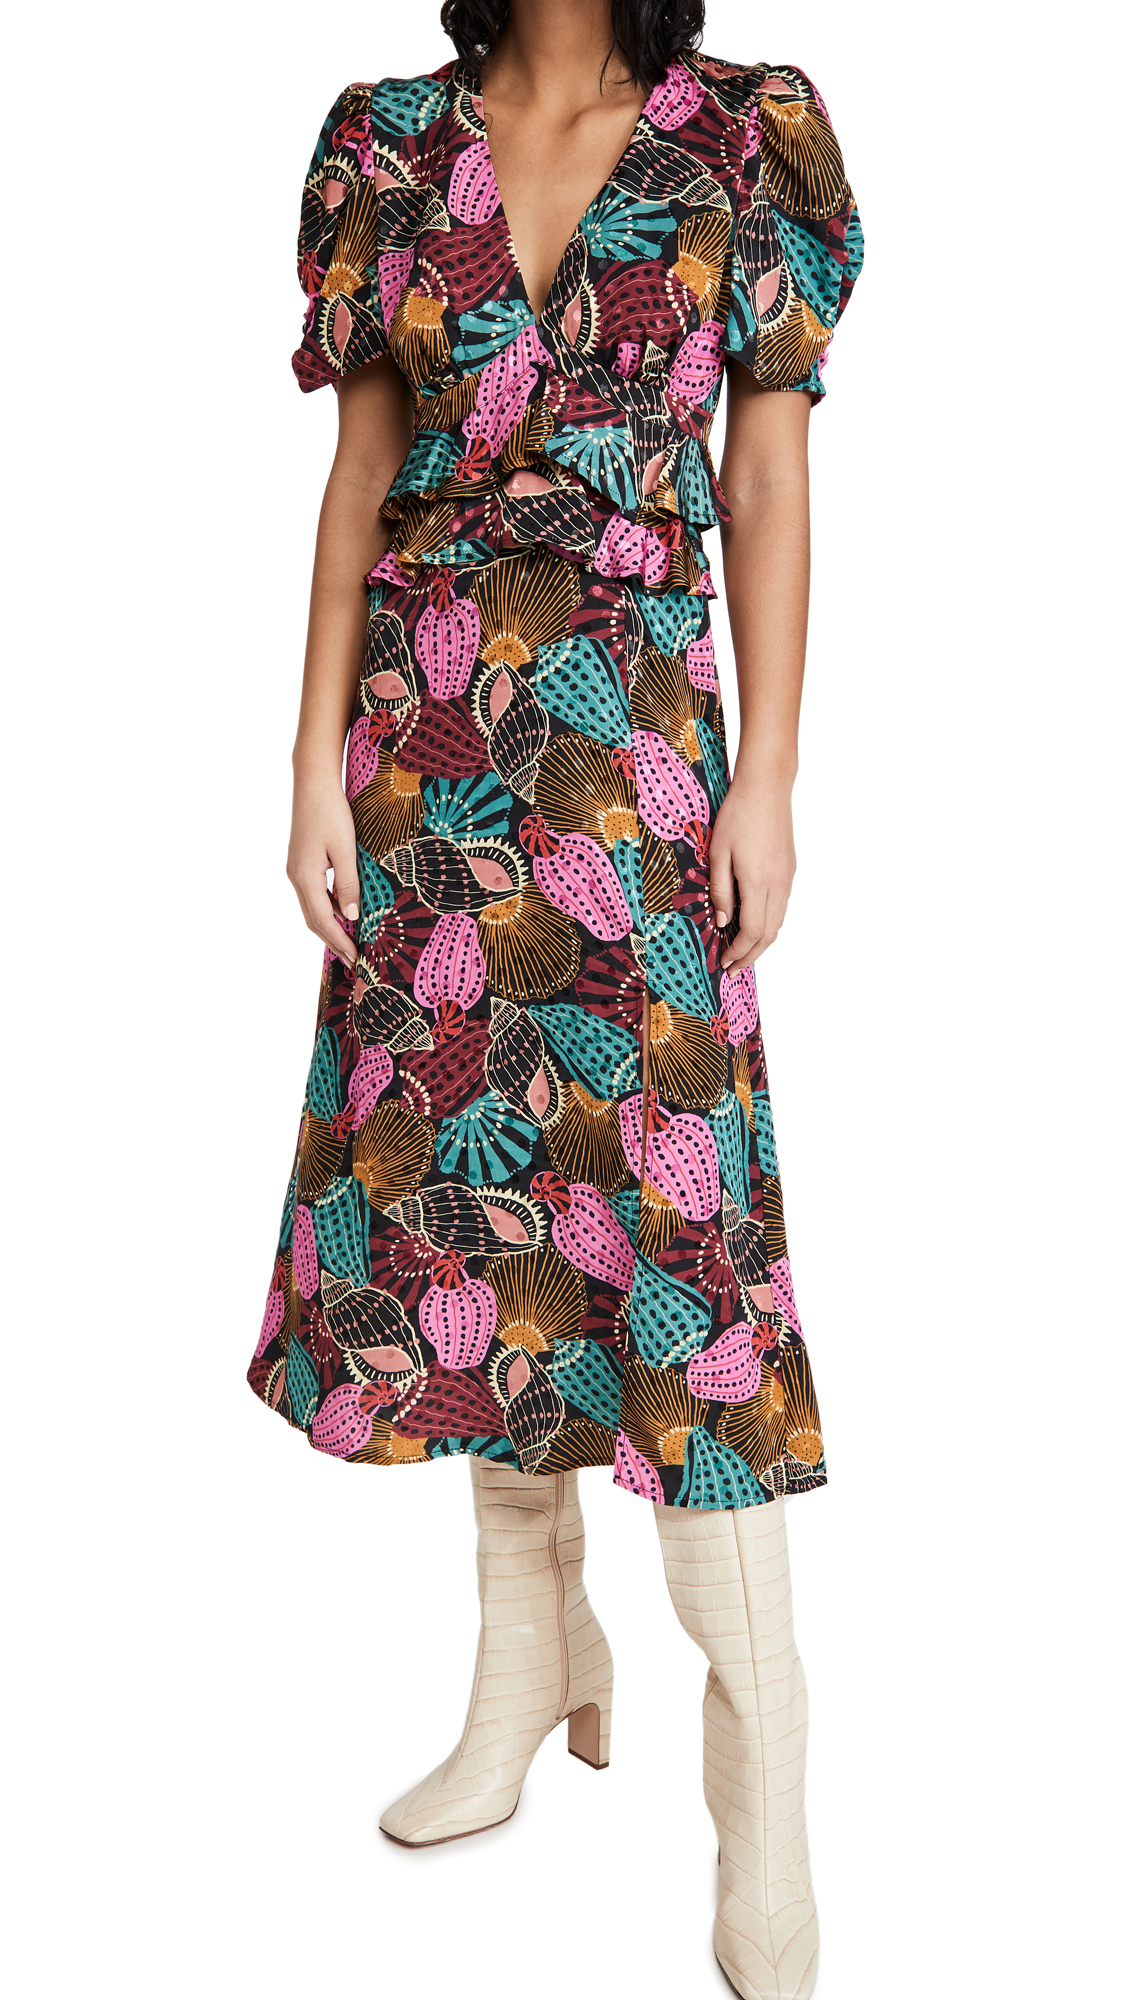 FARM Rio Shell Mix Midi Dress